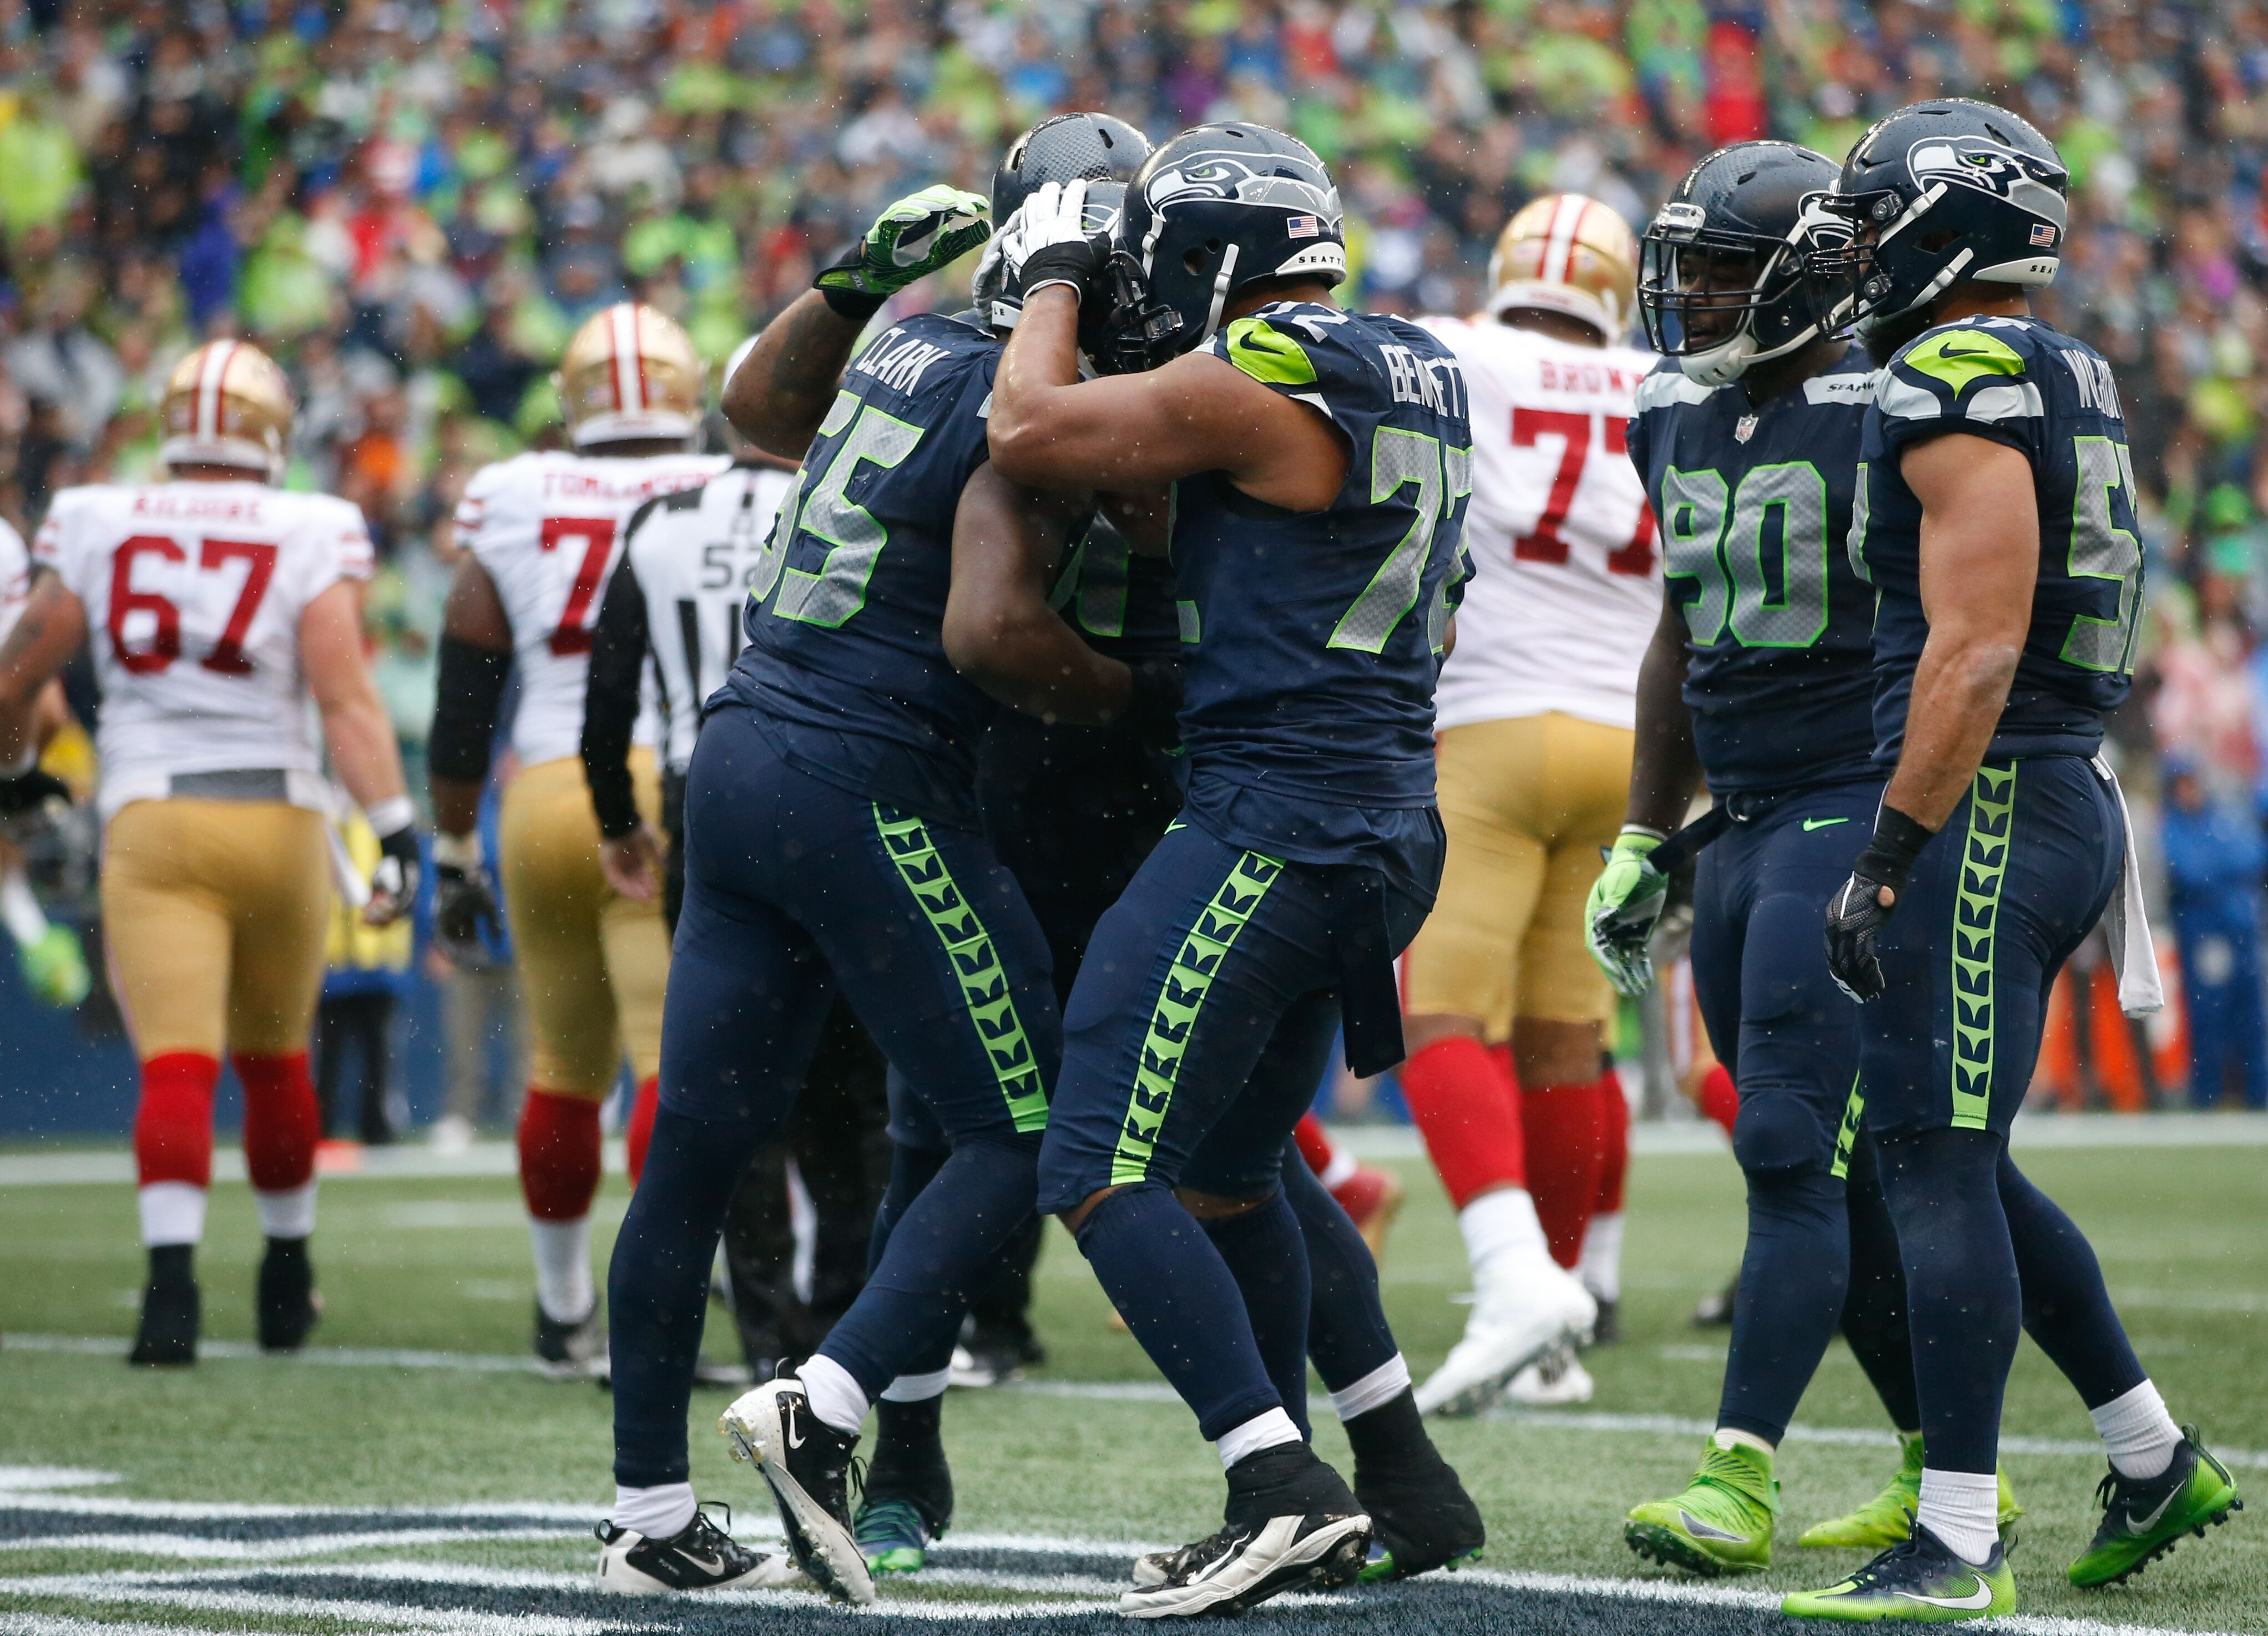 848629636-san-francisco-49ers-v-seattle-seahawks.jpg